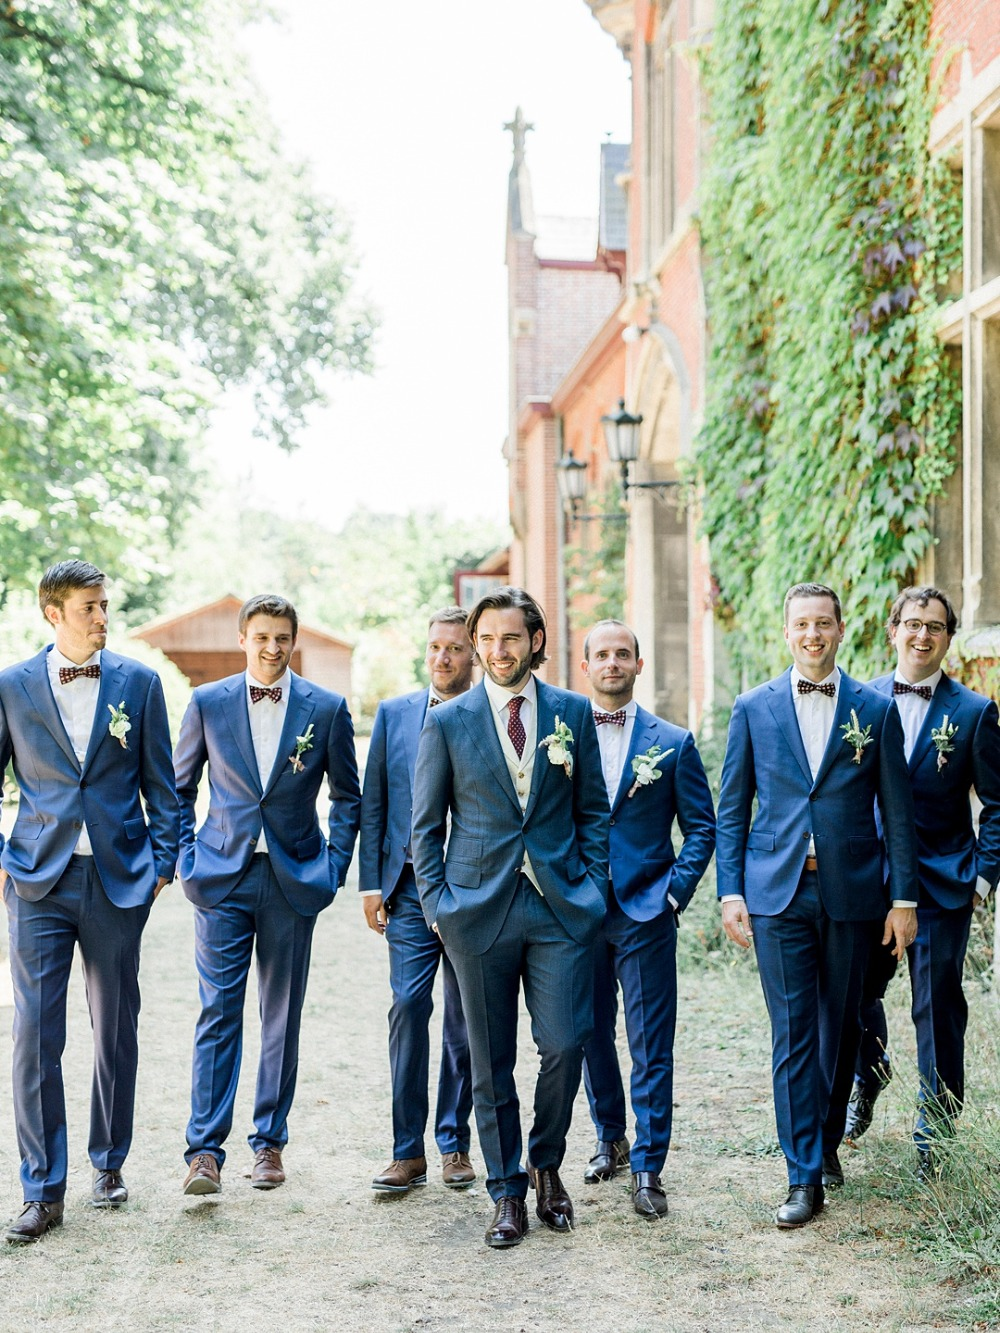 Navy blue suits for the groom and his men